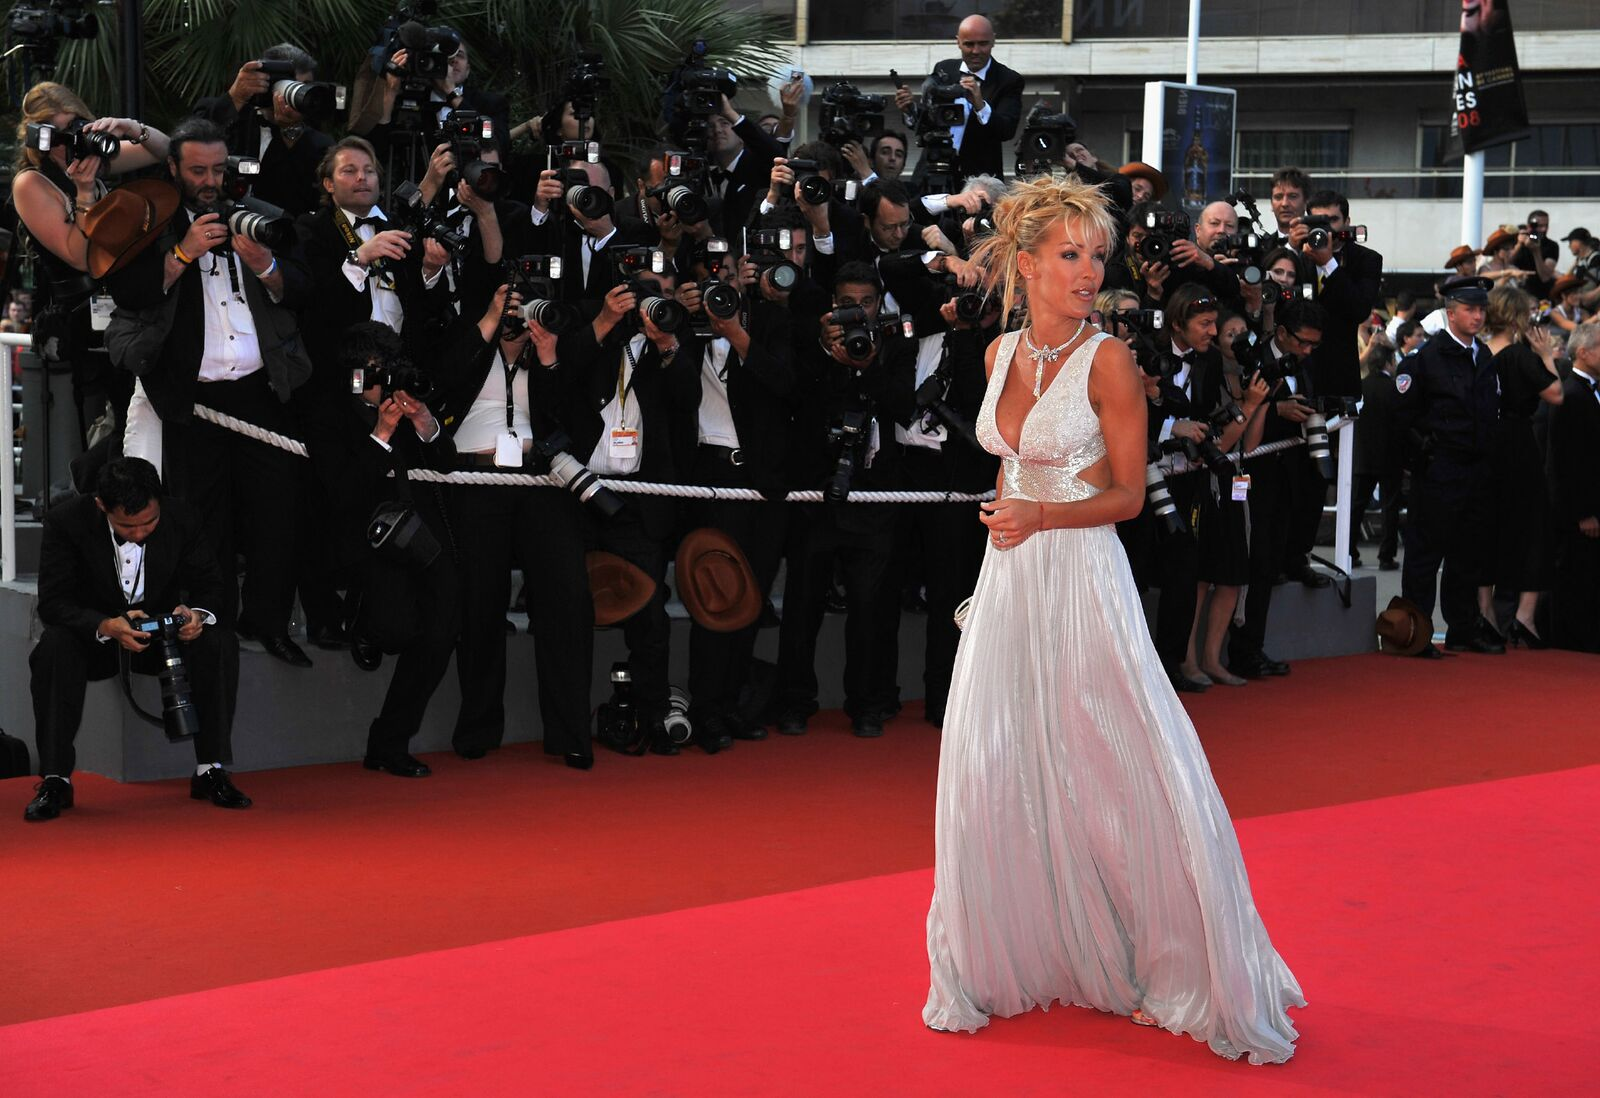 La chanteuse Ophélie Winter sur le tapis rouge. | Photo : Getty Images